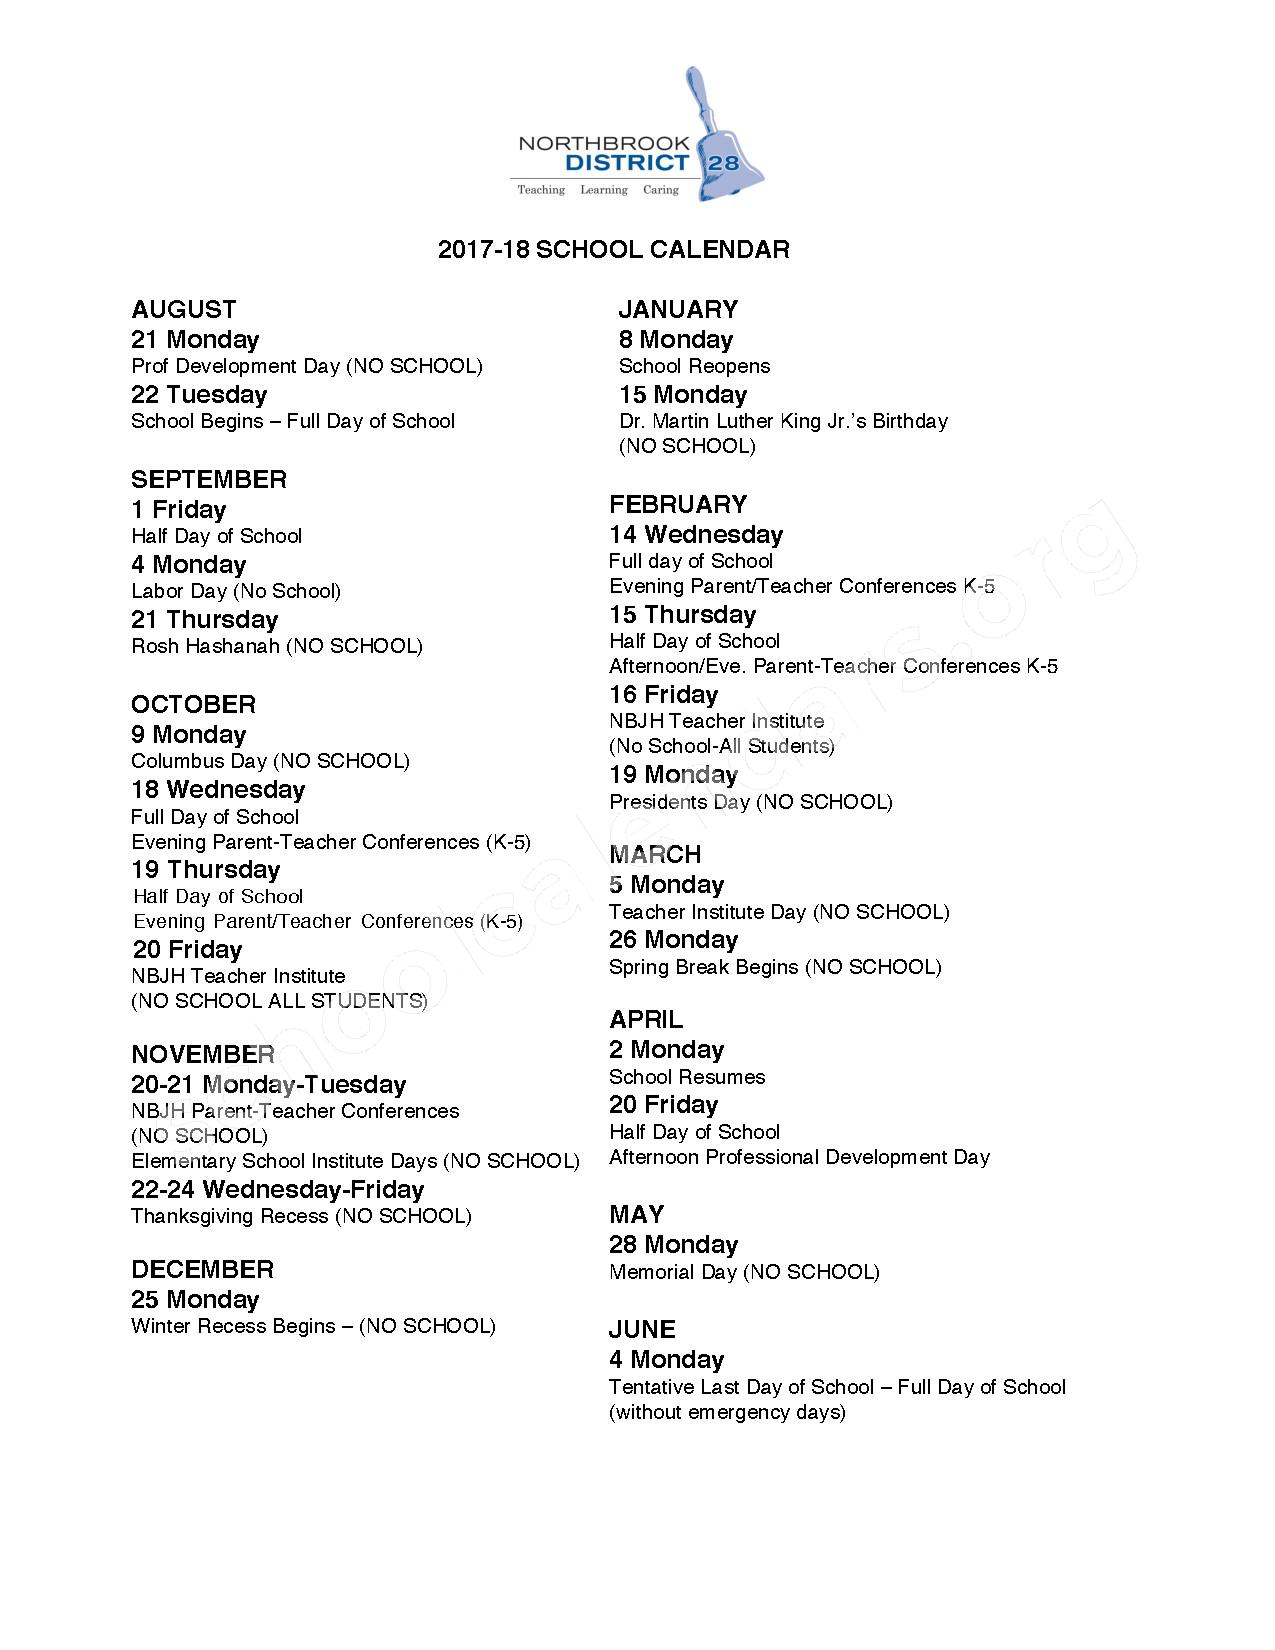 2017 - 2018 District Calendar – Northbrook School District 28 – page 1